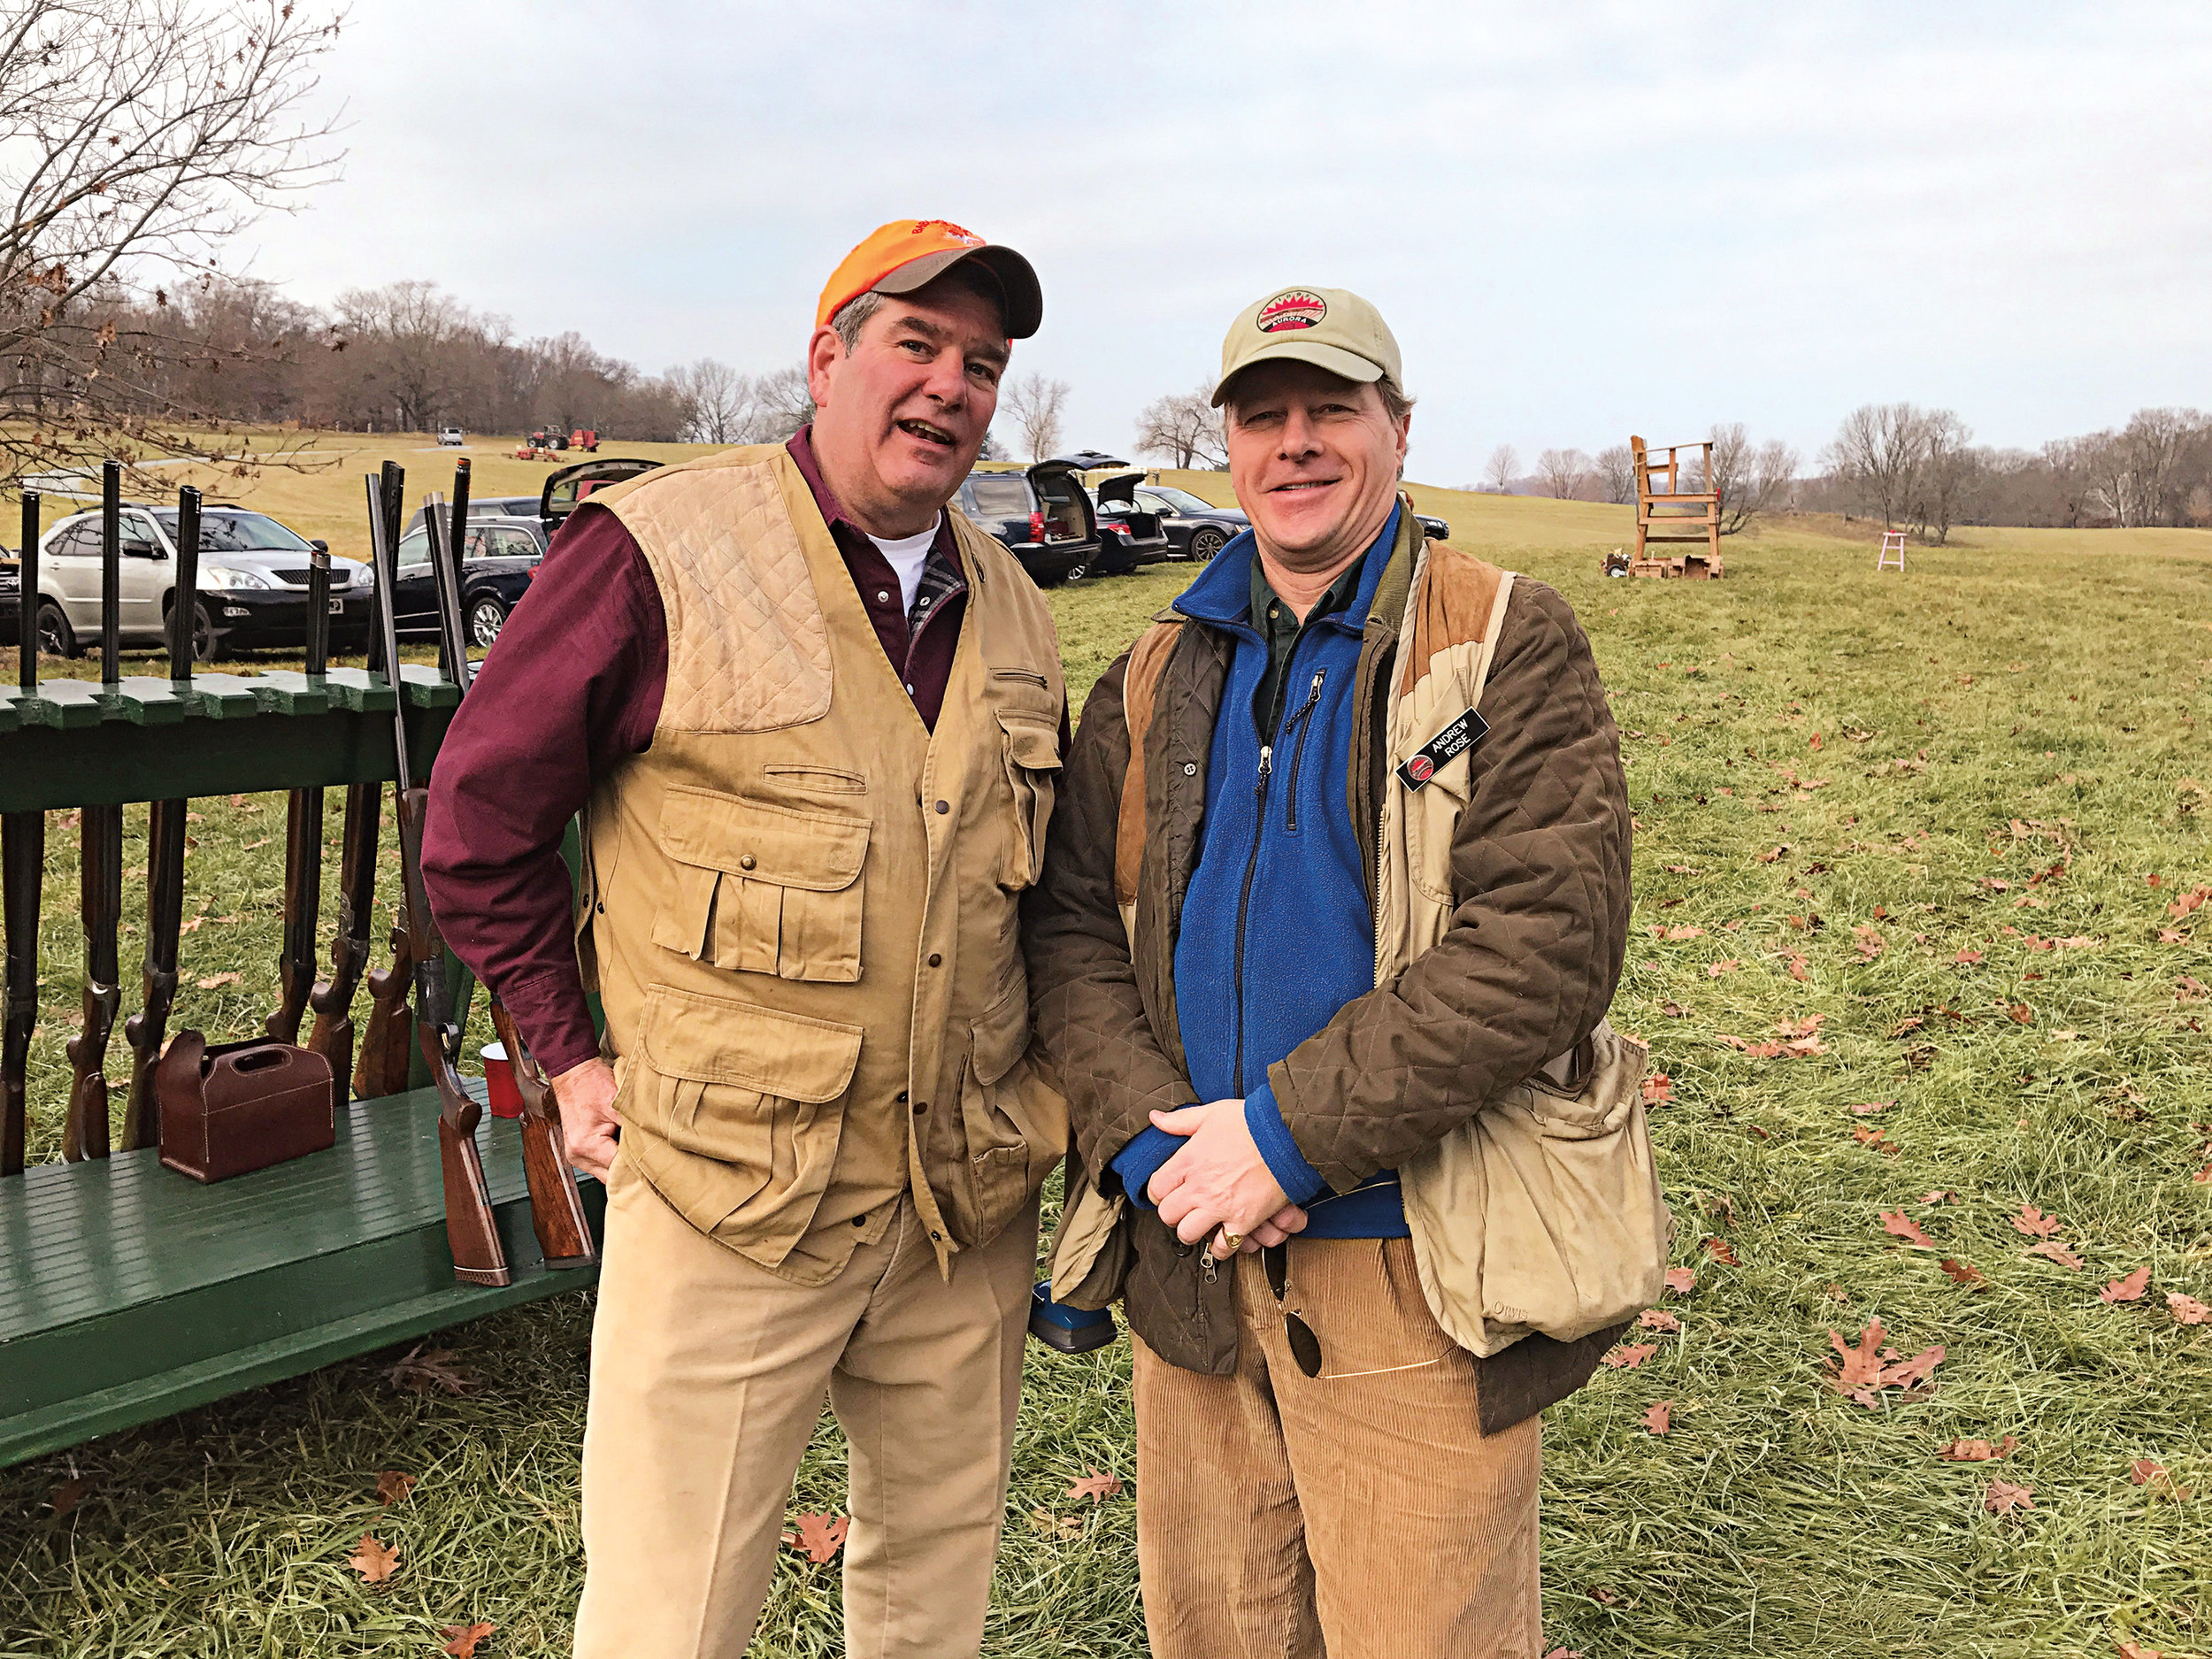 Warren Ingersoll '77 (l.) and Andrew Rose '78 were surprised to both be competing at the Dorrance-du Pont Cup shoot at the Aurora Gun Club in Delaware.